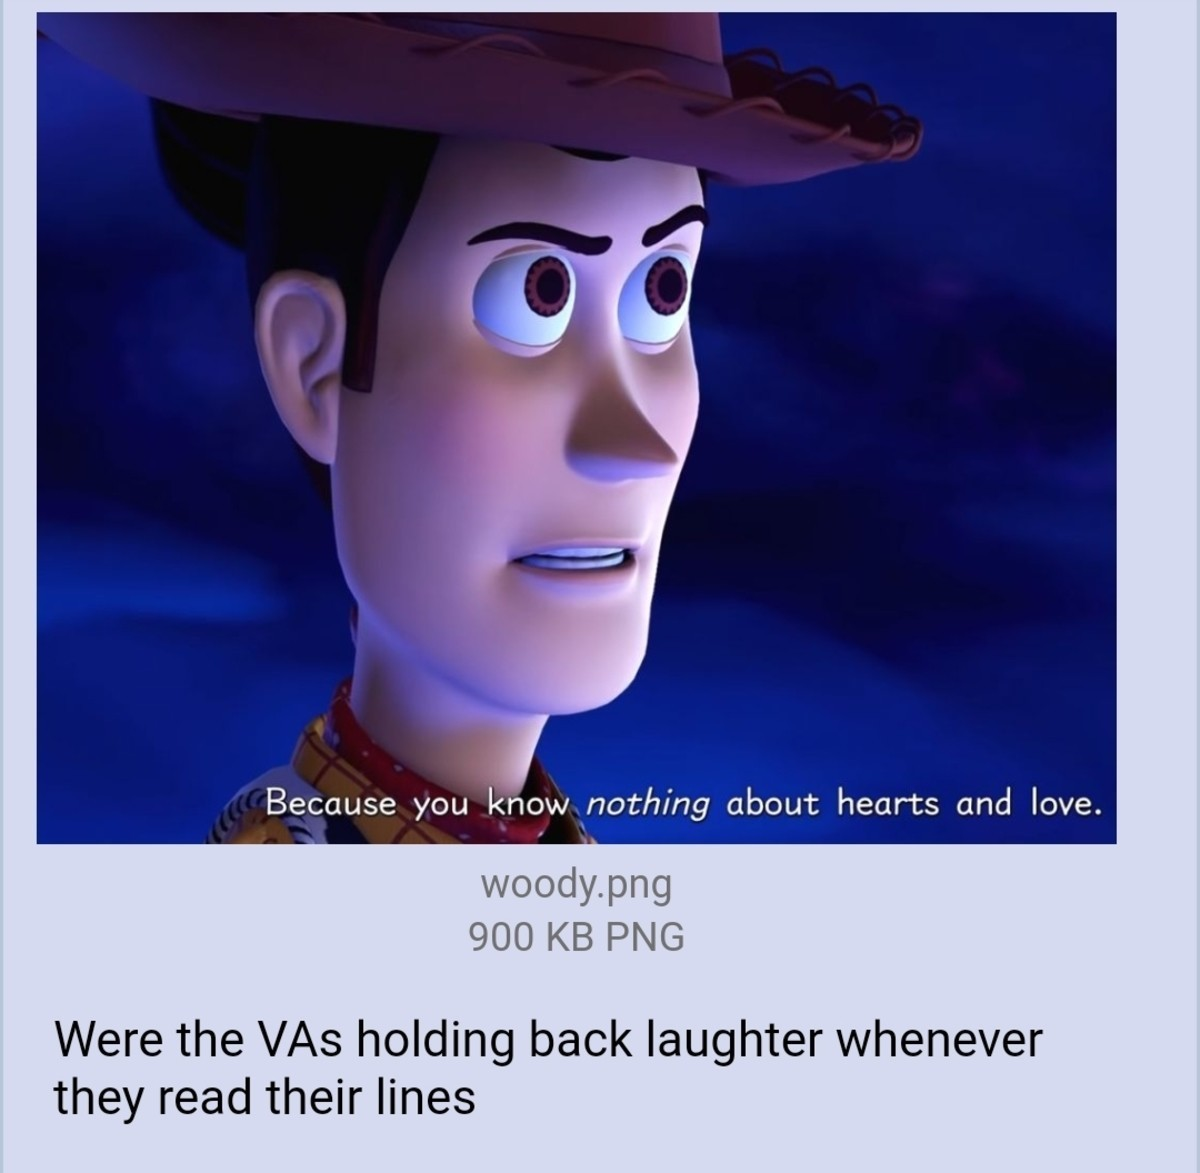 """Kingdom hearts. .. Everyone here talking about some weeb video game while I was like, """"That's basically the summary of Toy Story 3, of course a kid's movie would sound dumb.&"""